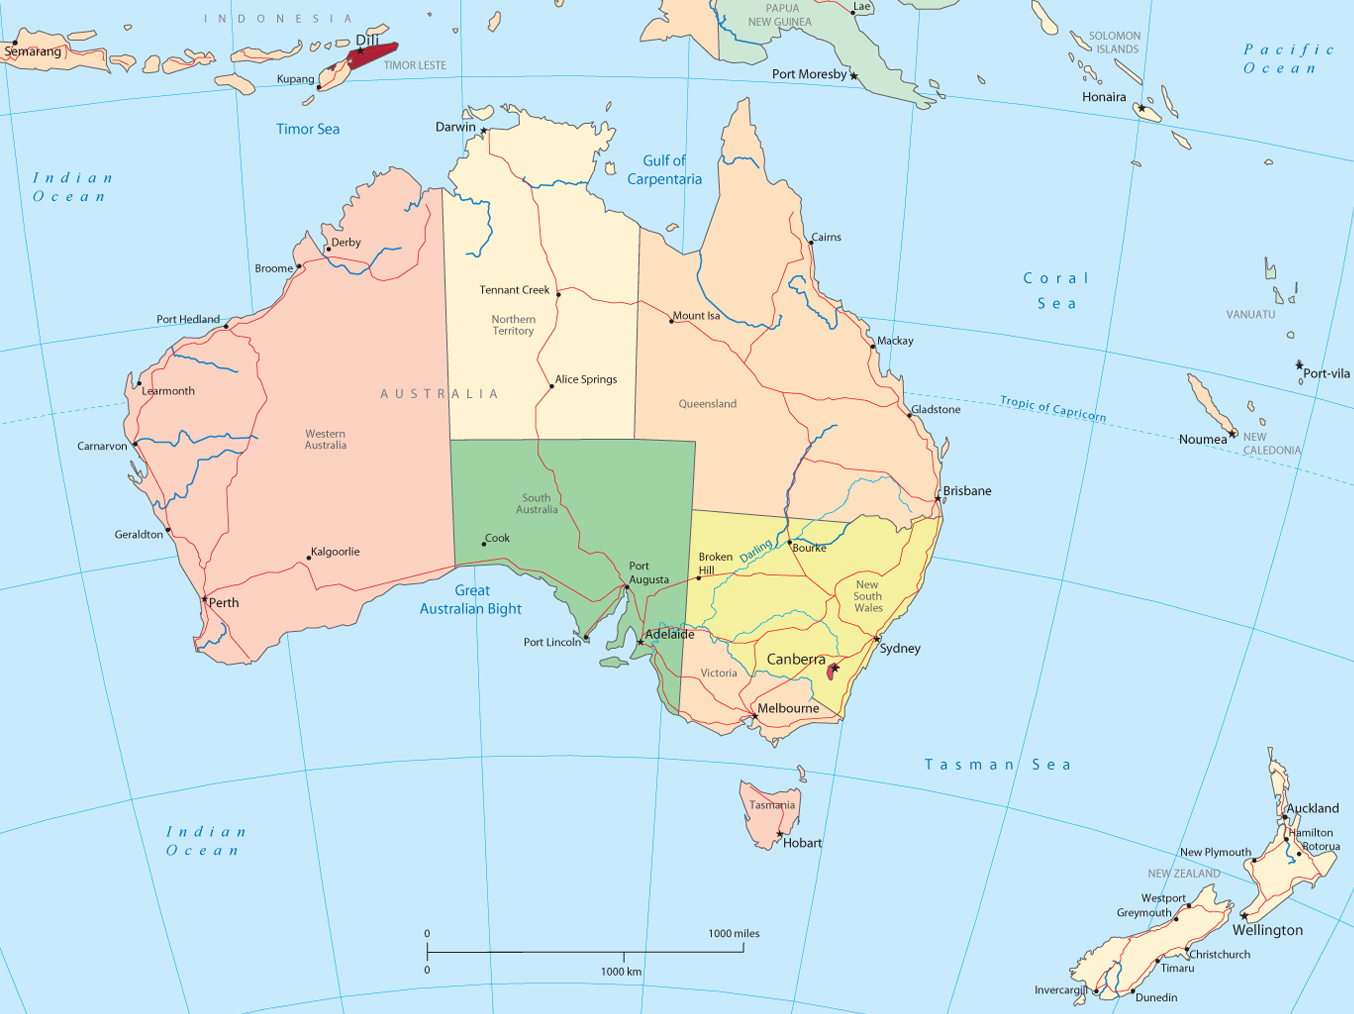 Australia Map Political.Australia And New Zealand Political Map